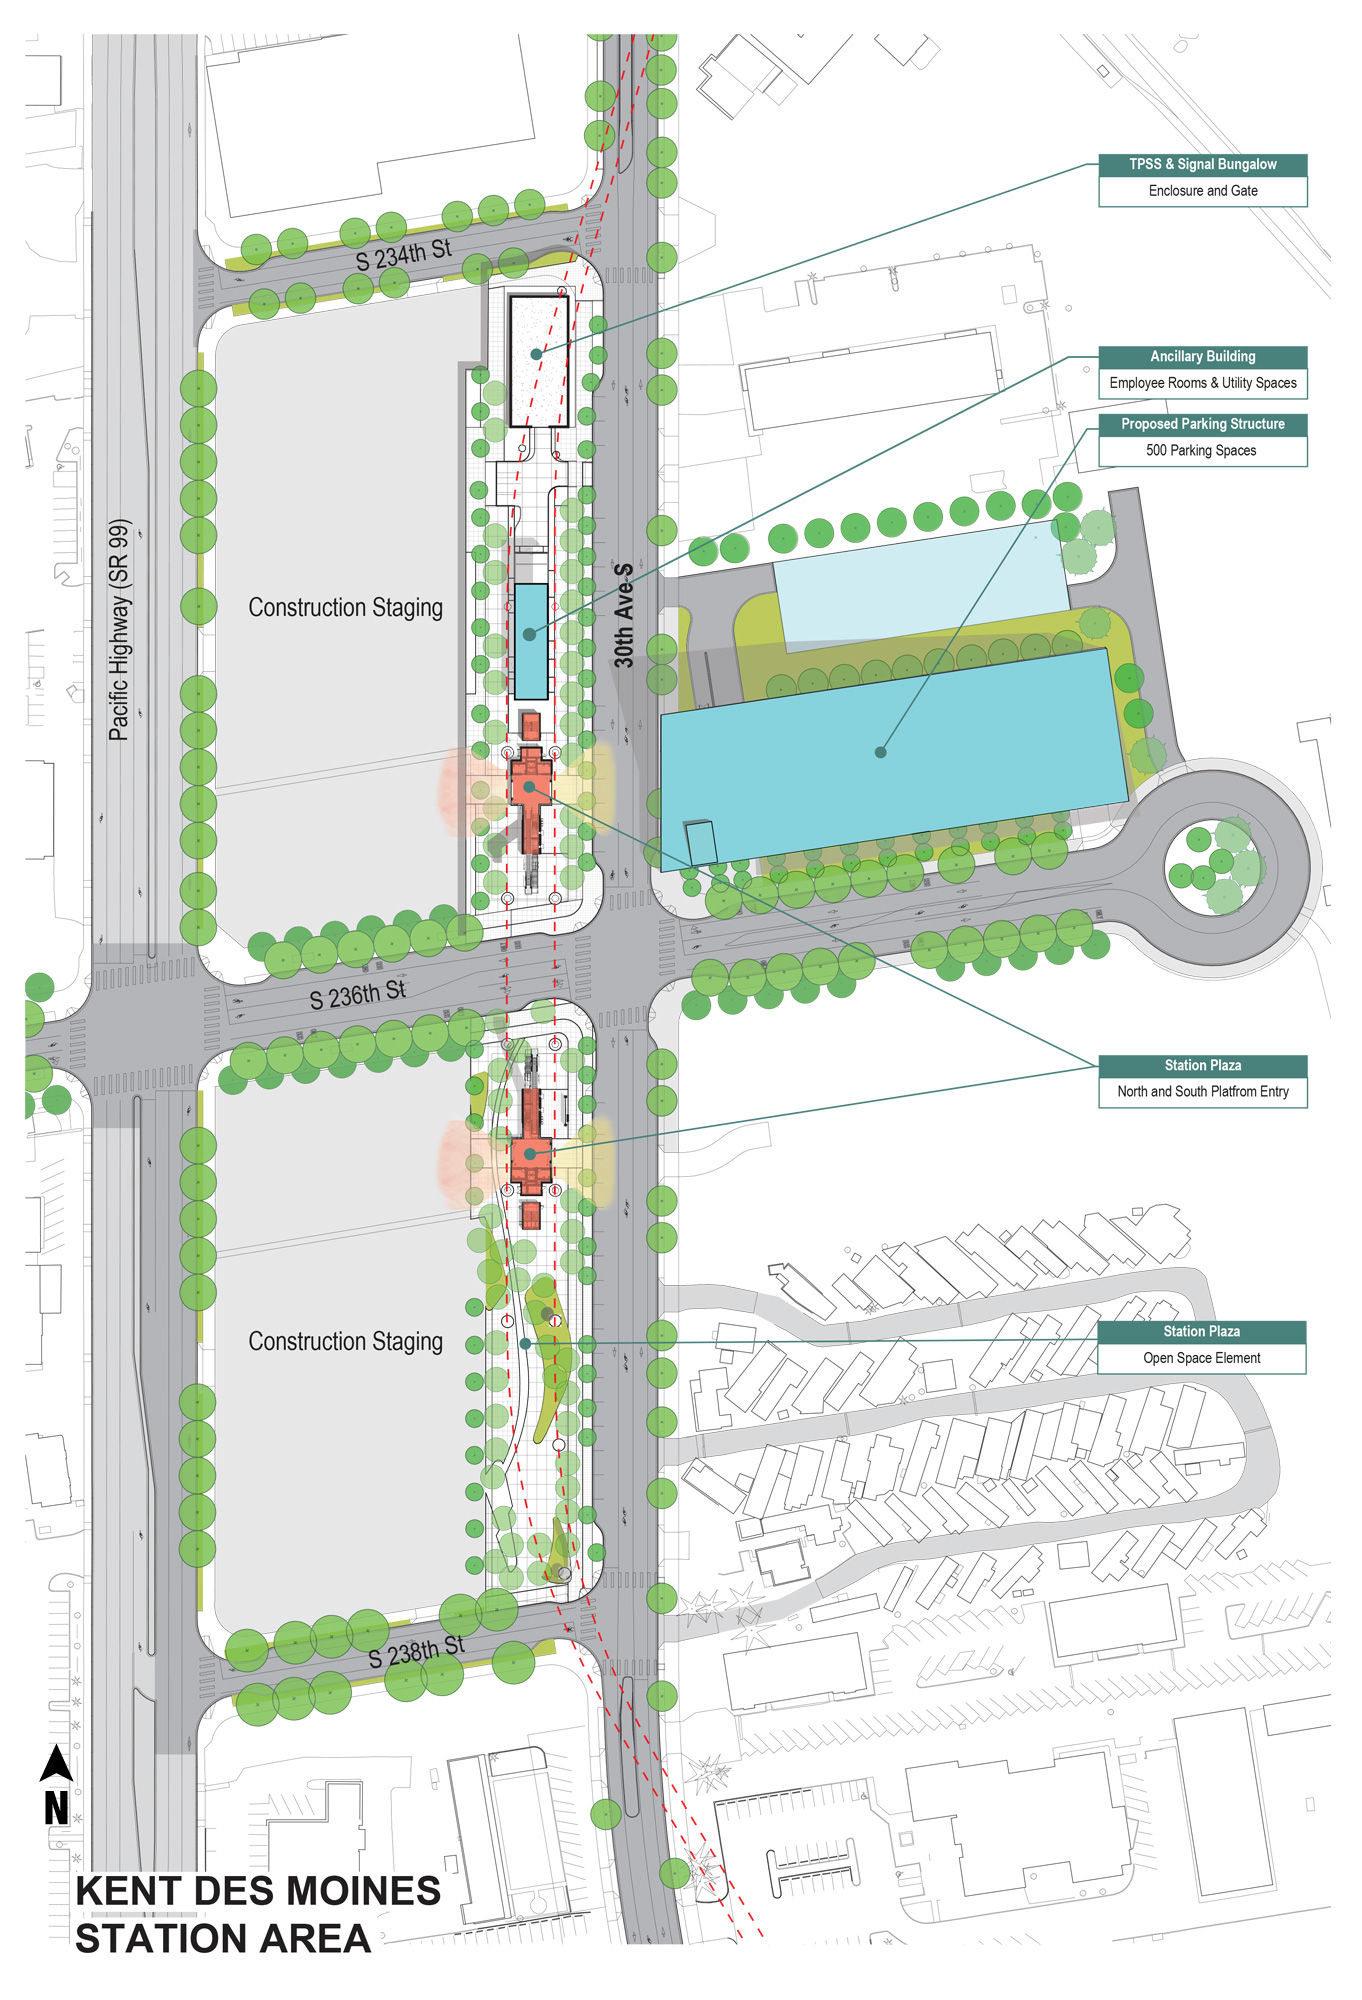 Kent Des Moines site plan showing station, parking garage, and construction area.